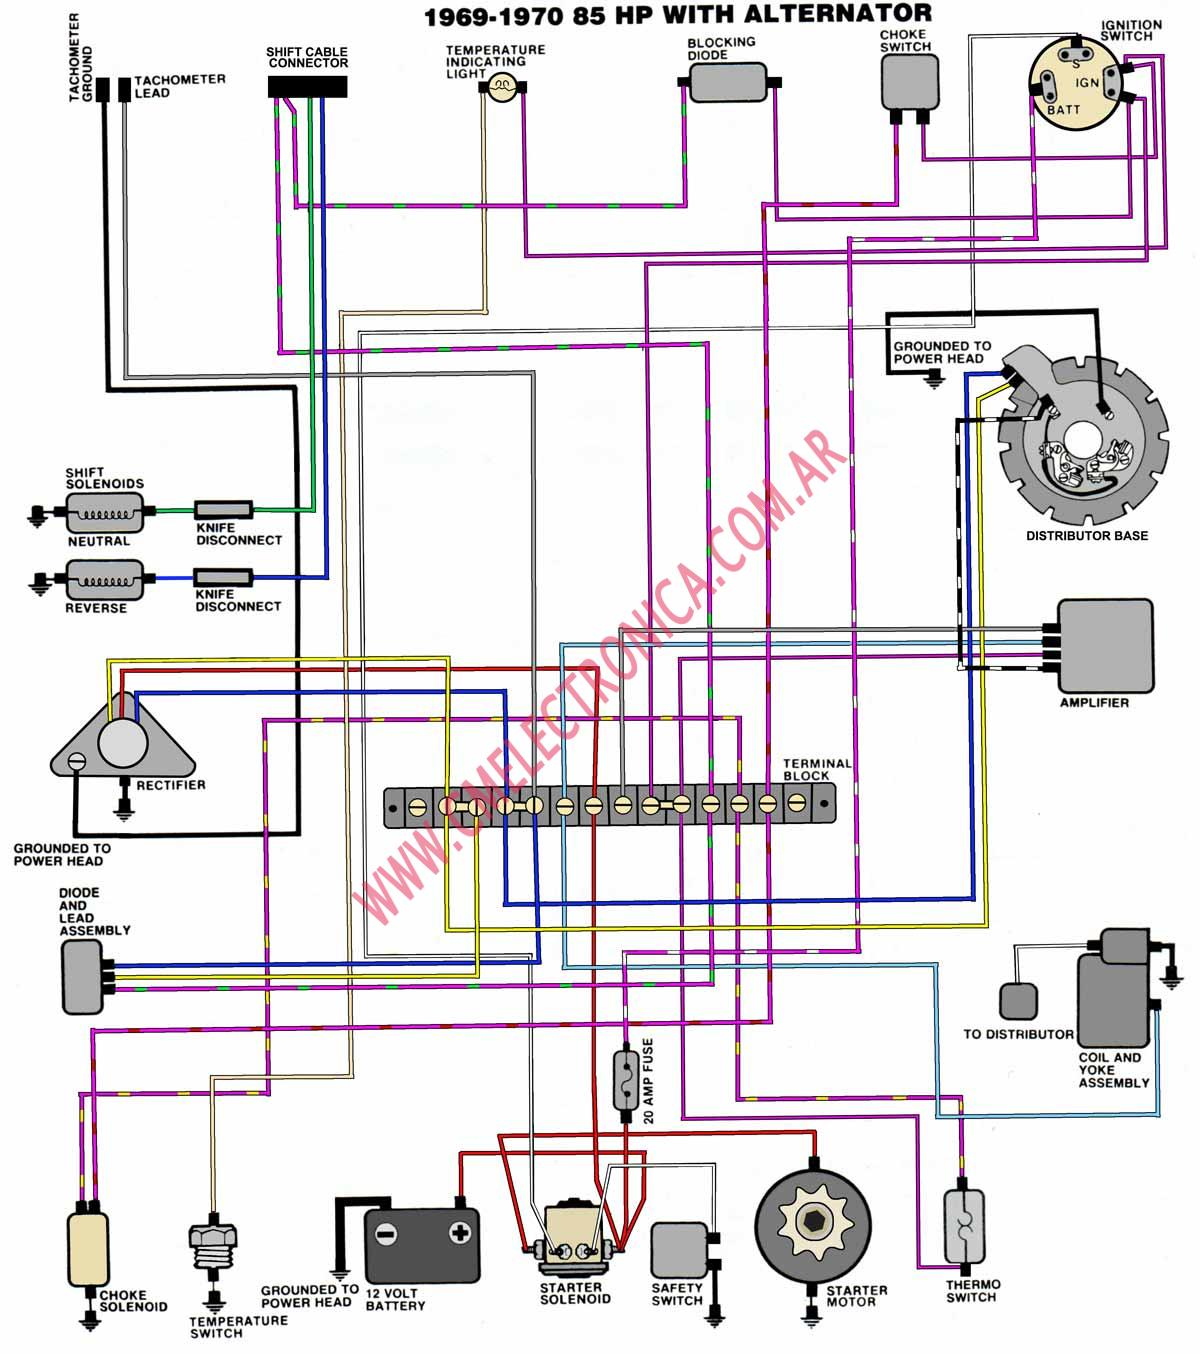 diagrama evinrude johnson 69 70 v4